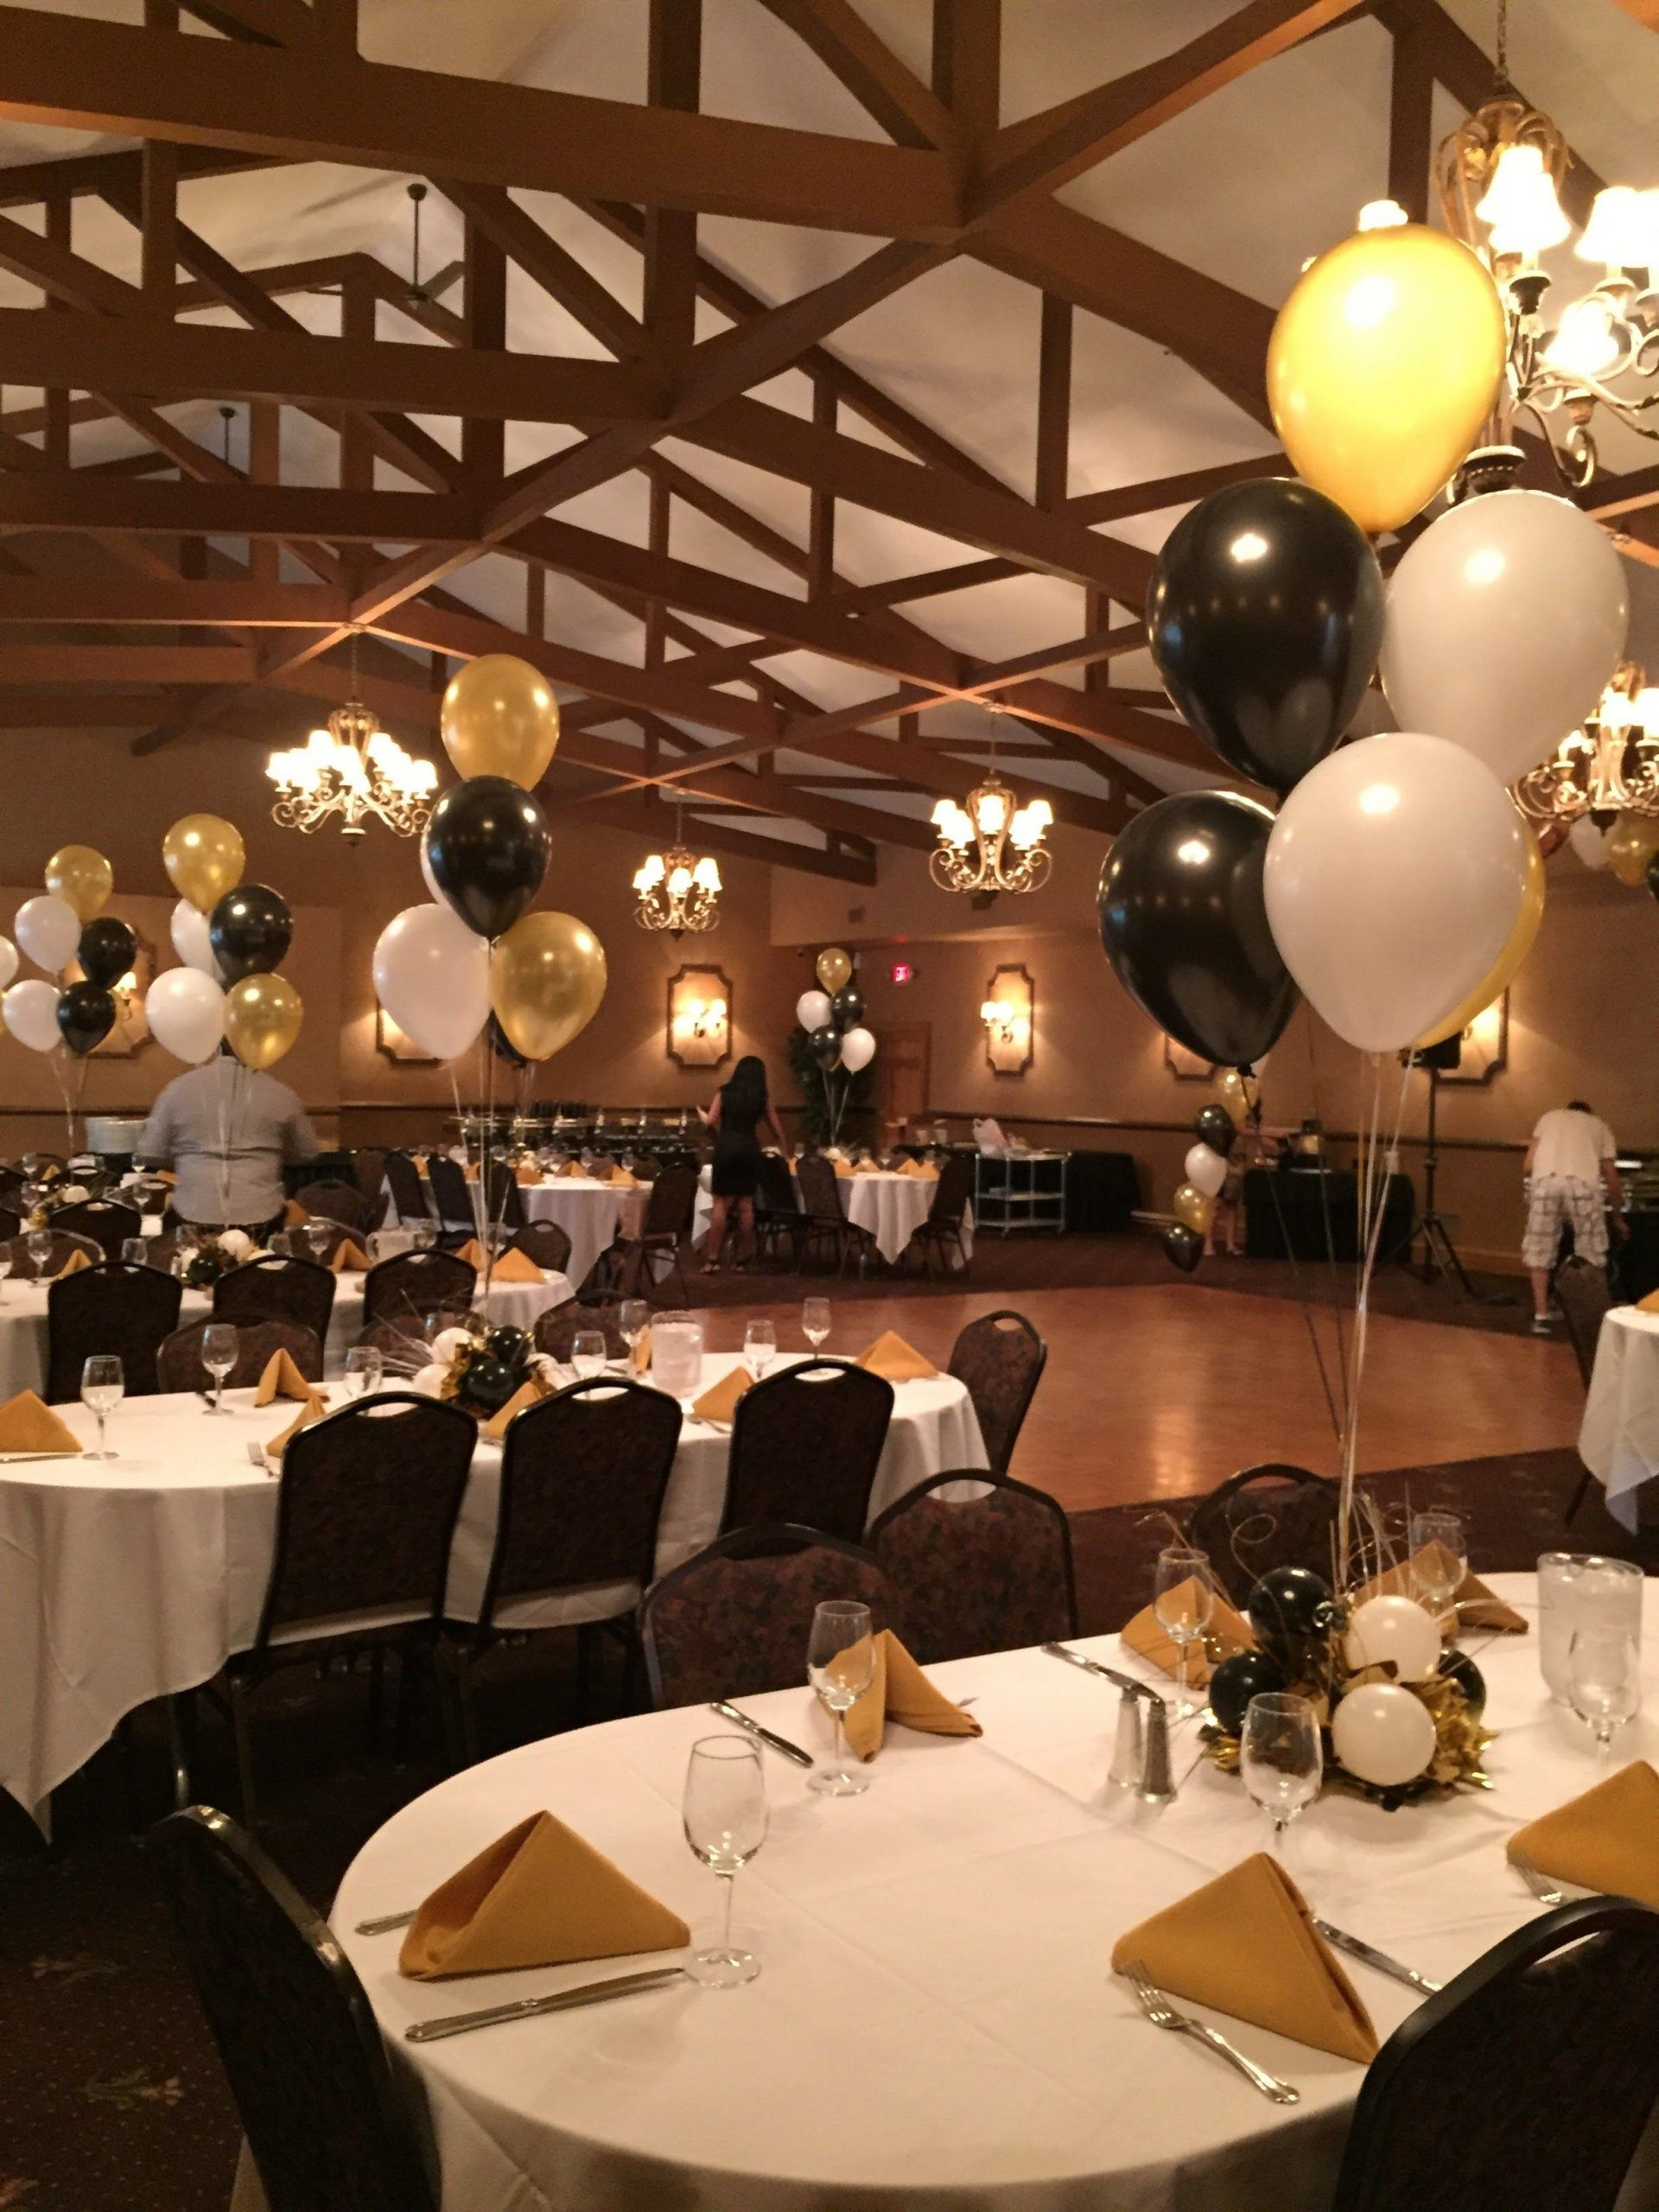 60th Birthday Party Decorations With Regard To Trending This Year 60th Birthday Party Decorations 60th Birthday Decorations 70th Birthday Party Ideas For Mom